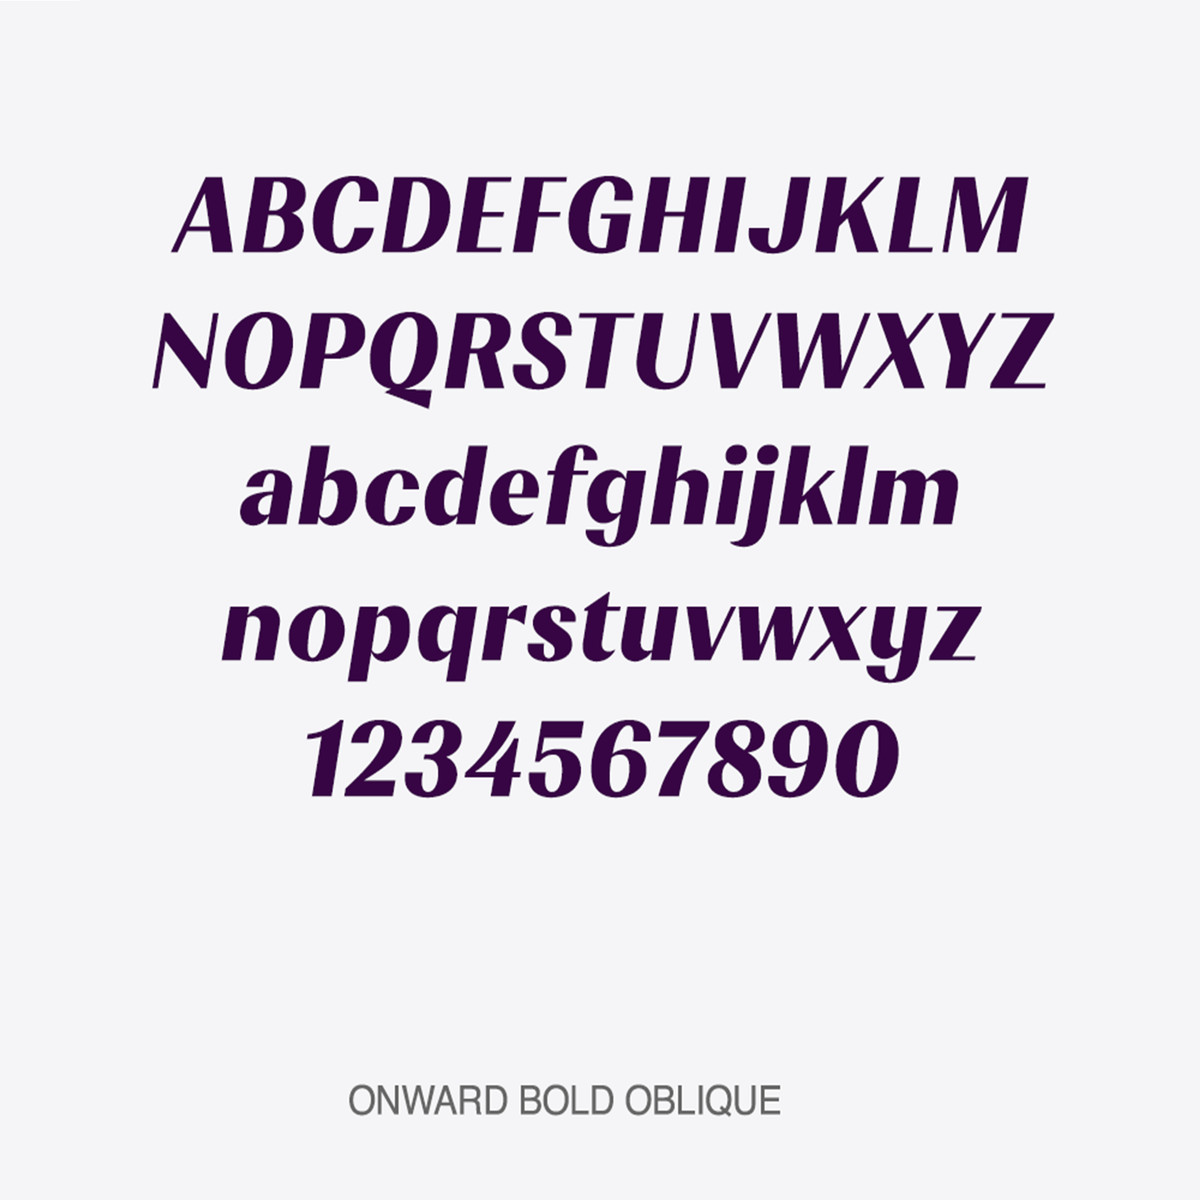 Onward Oblique display font shown as alphabet and numerical